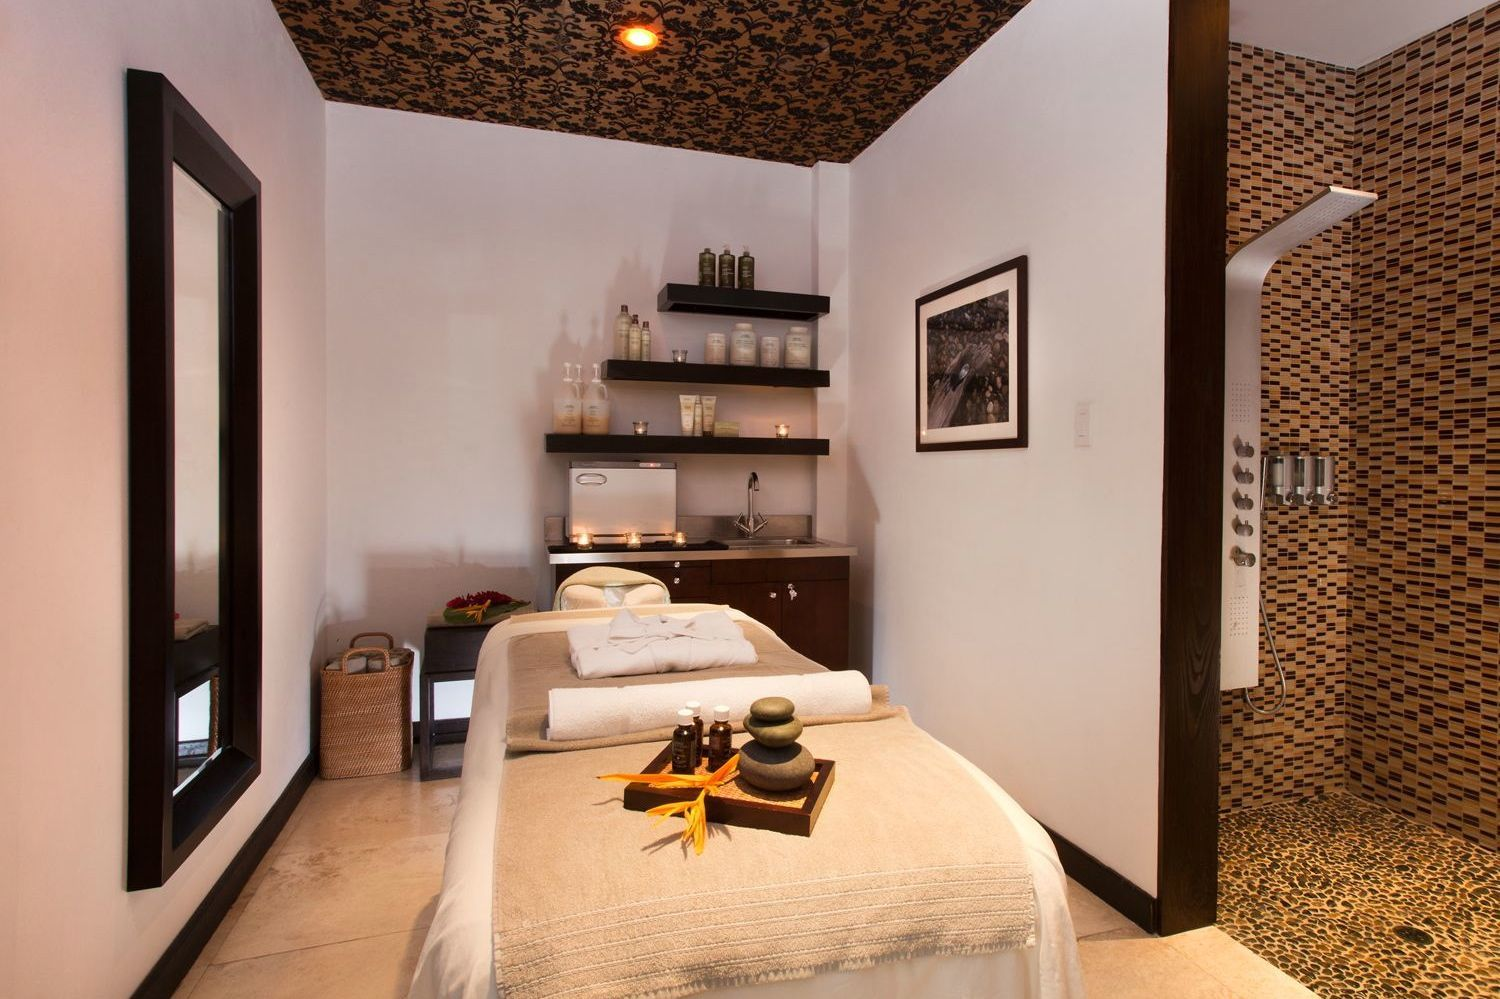 Pictures of Spa Treatment Rooms | How to Create a Massage Room in ...